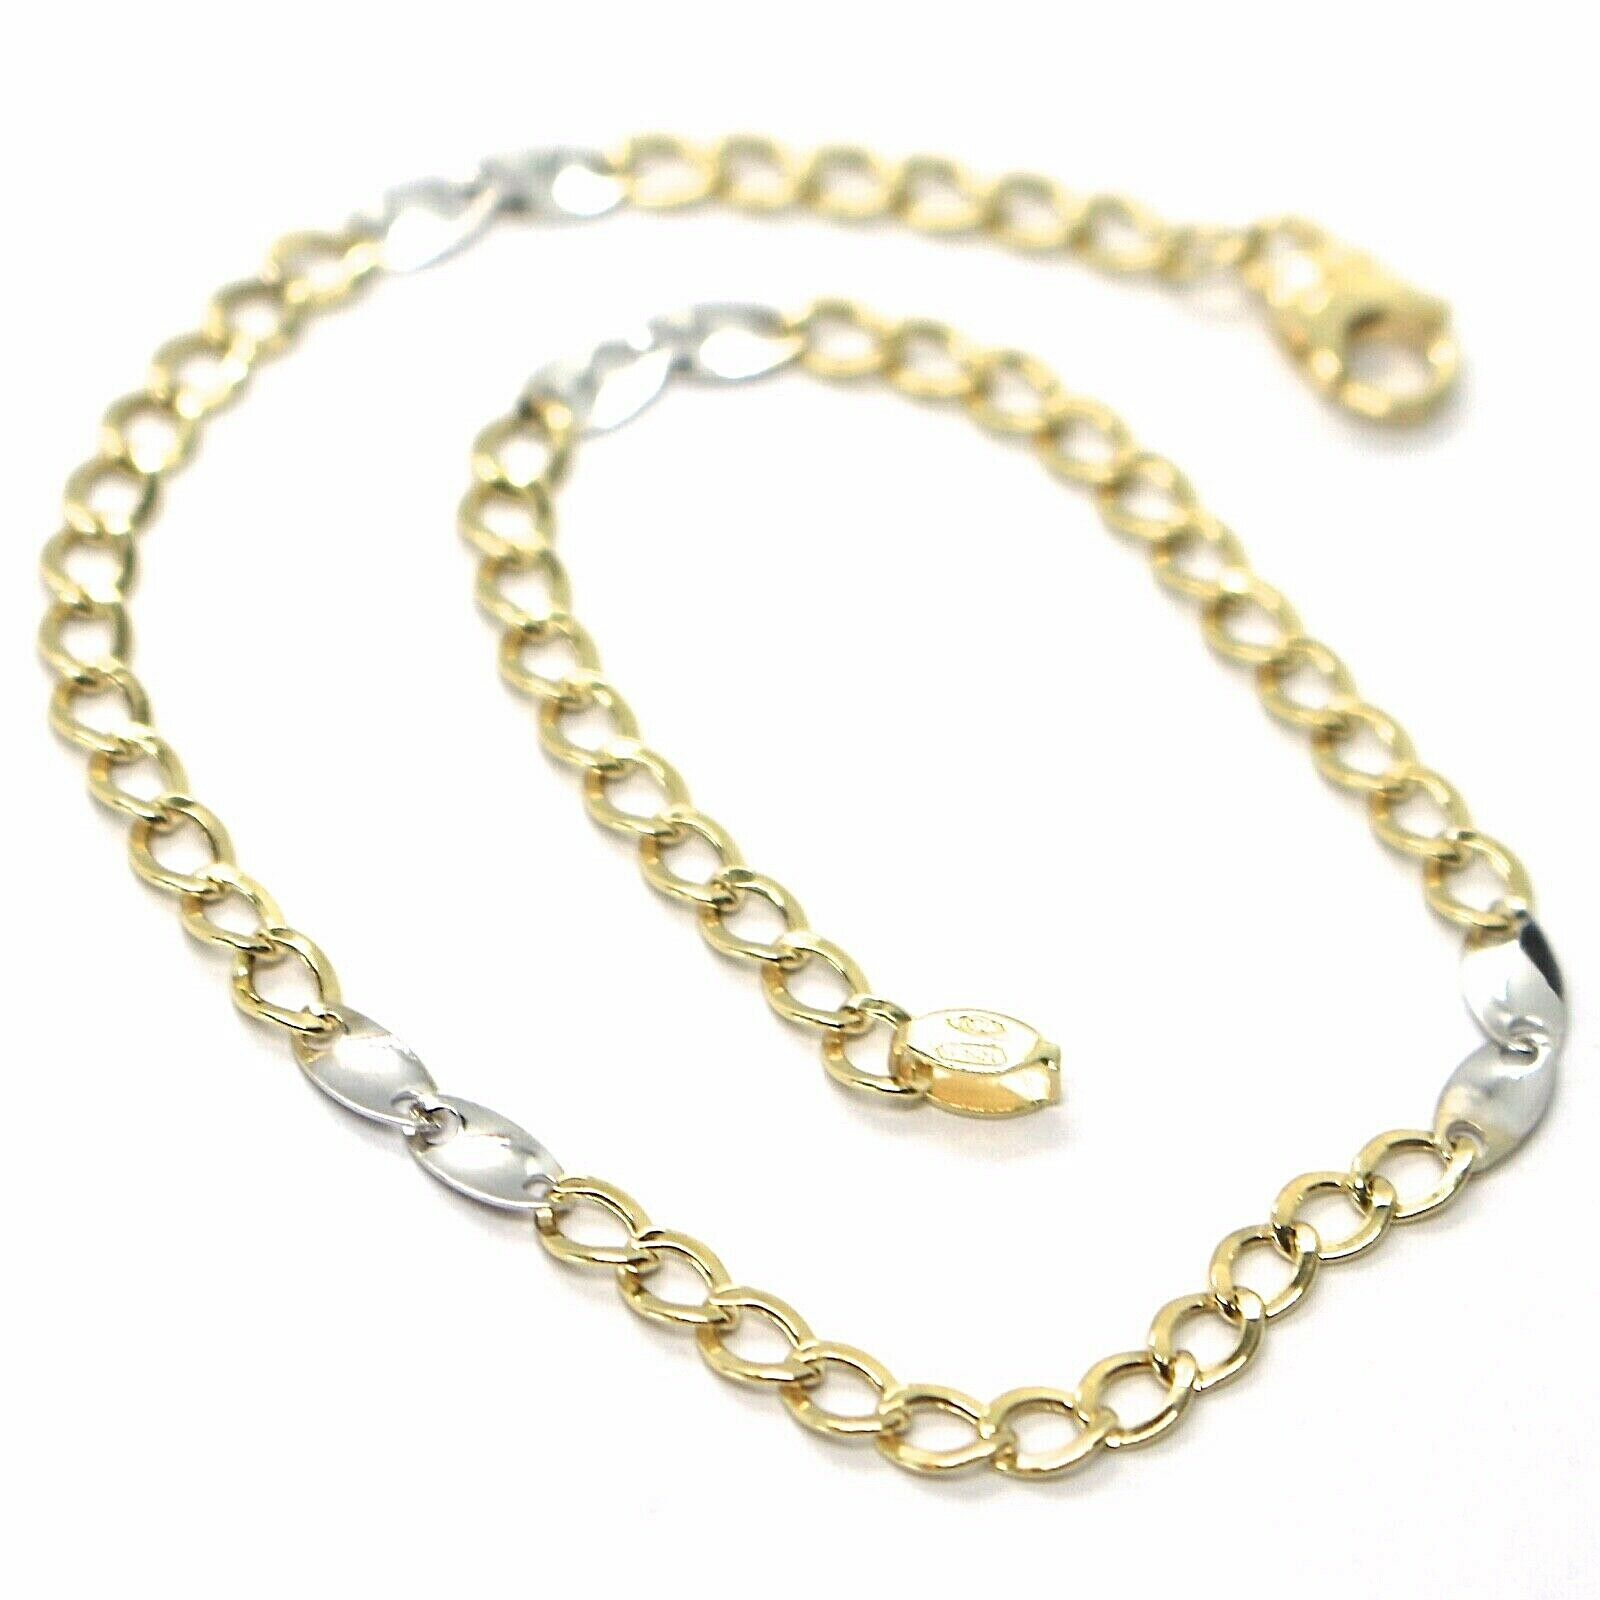 Primary image for BRACELET YELLOW AND WHITE GOLD 18K 750,GOURMETTE E DOUBLE OVALS ALTERNATING,3 MM